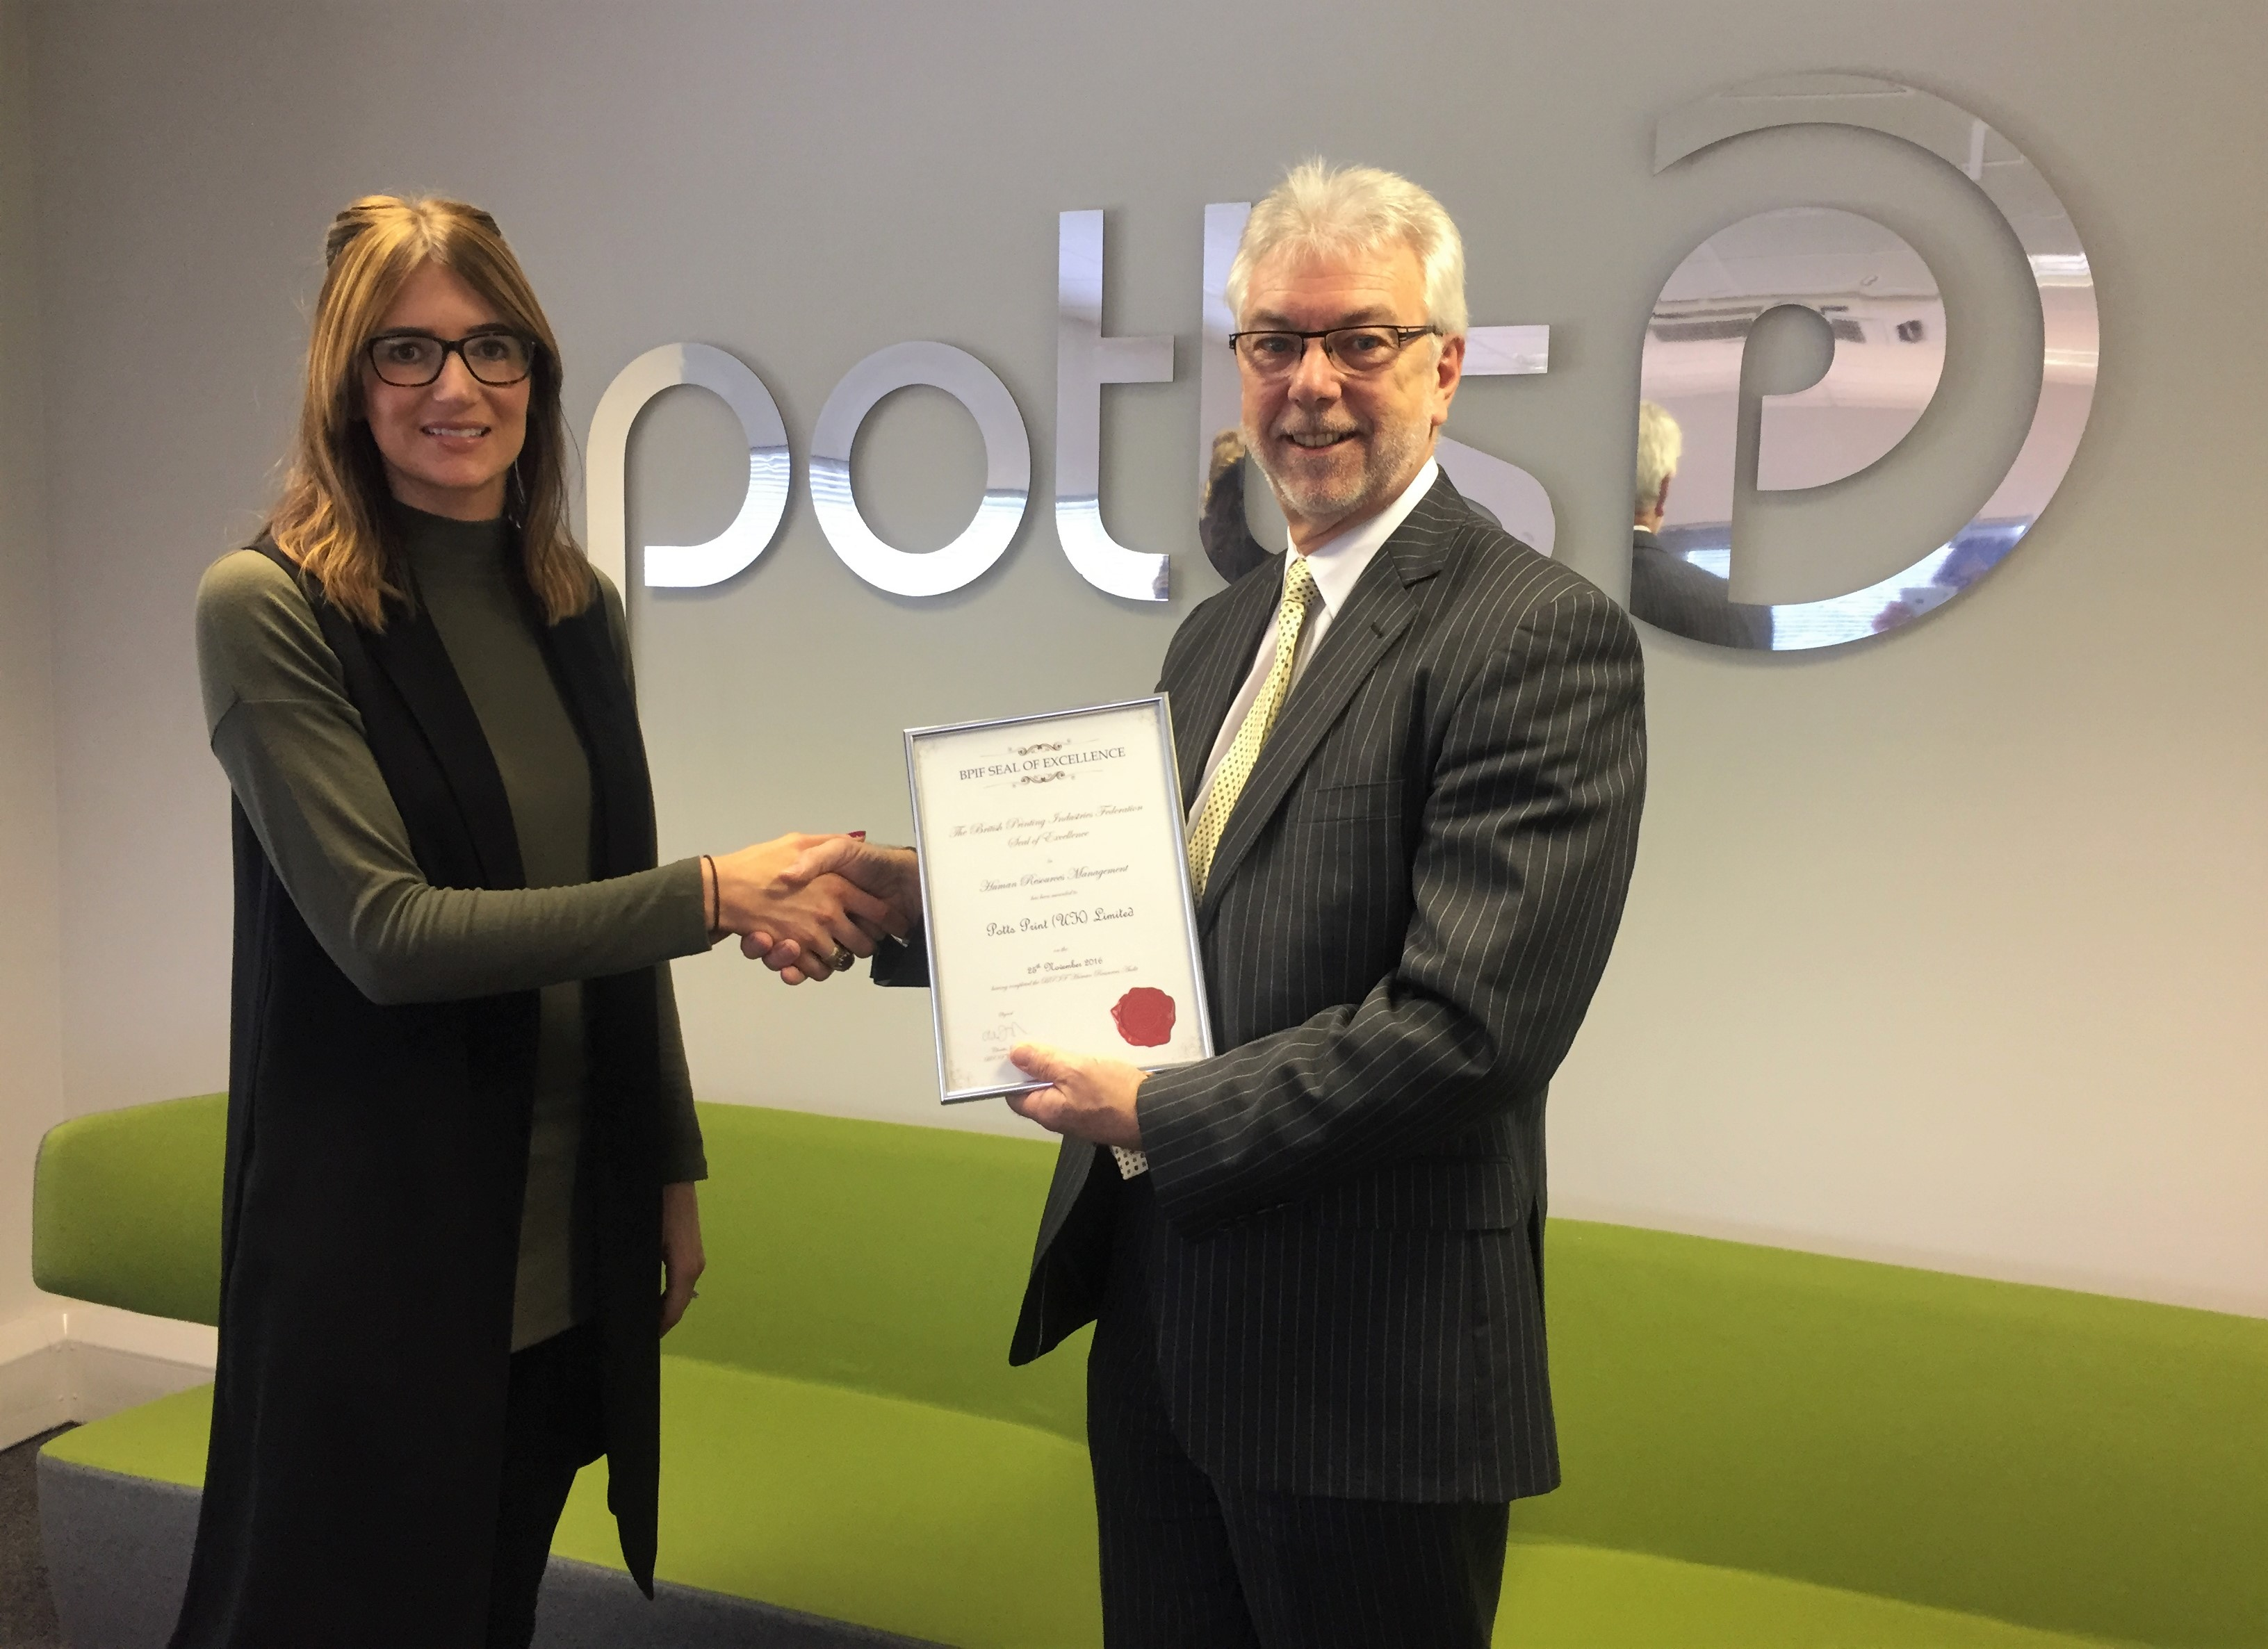 BPIF member Potts Print achieves BPIF HR Seal of Excellence